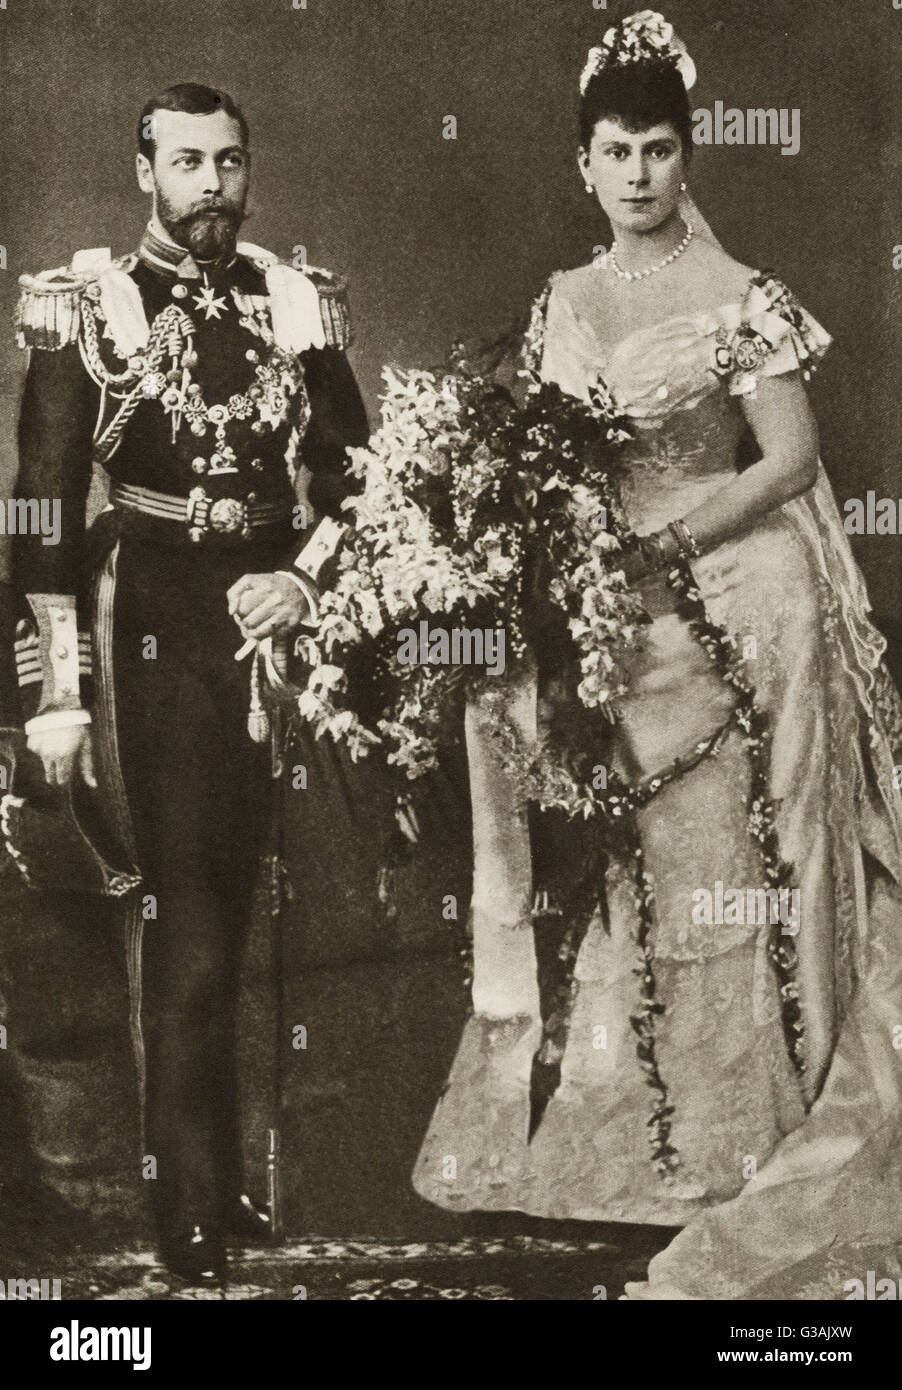 The marriage of the Duke of York and Princess Victoria May of Teck, (later King George V and Queen Mary consort), - Stock Image